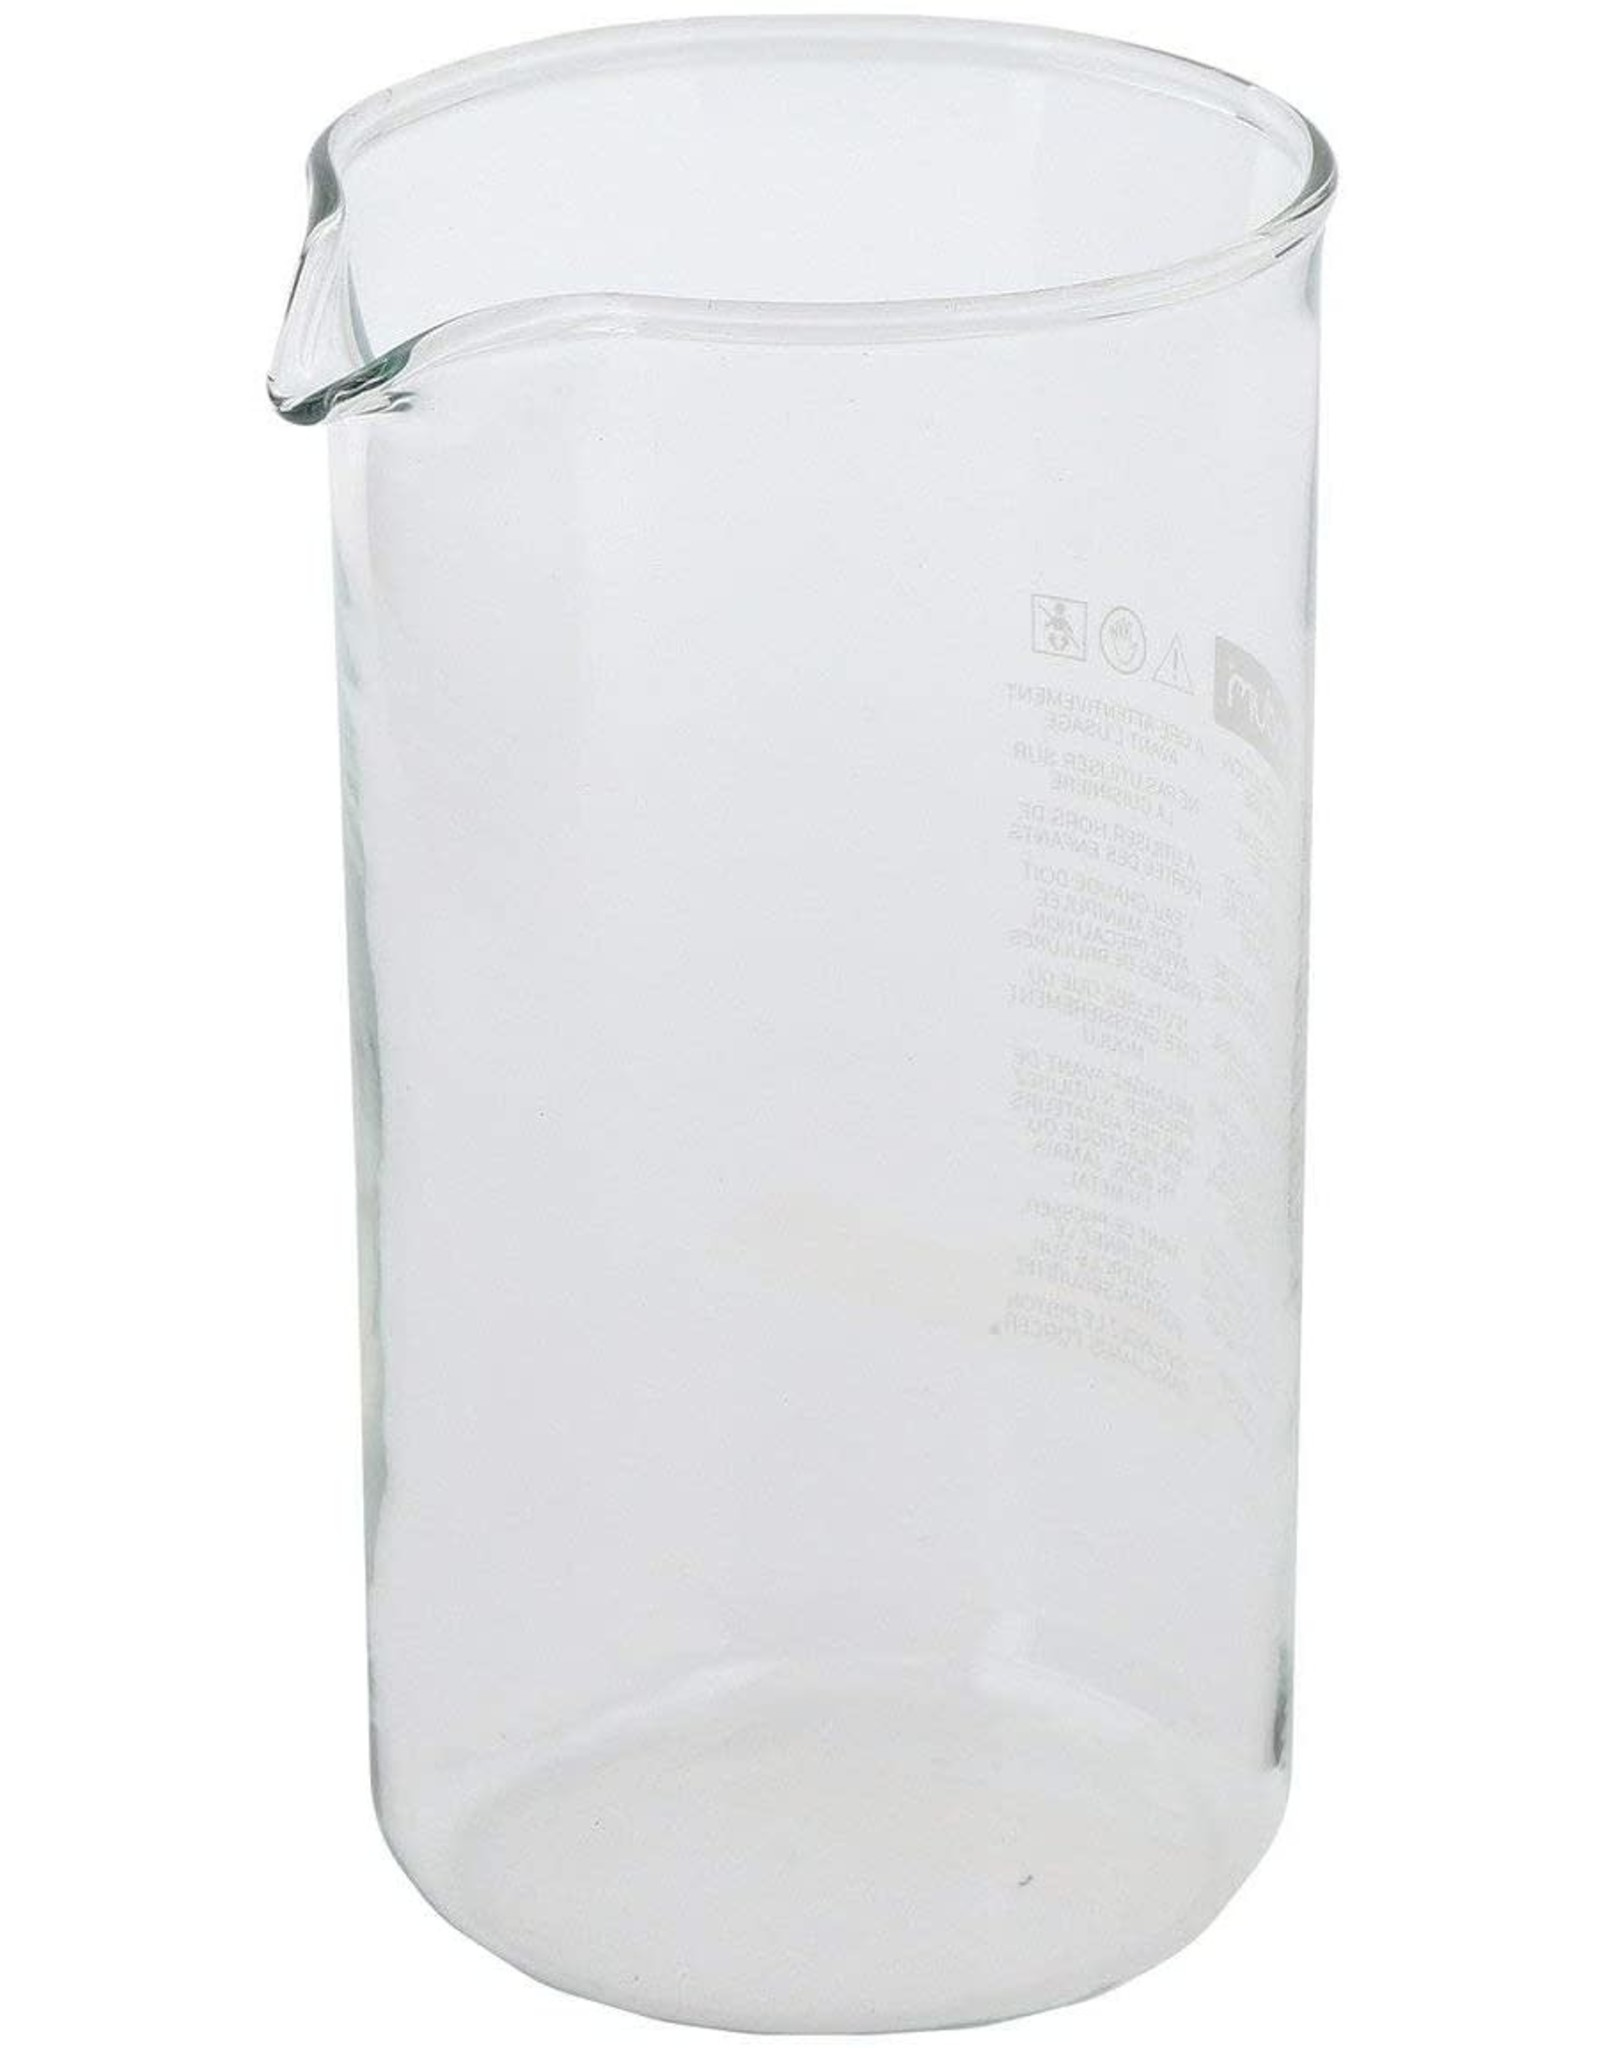 Bodum BODUM replacement glass 3 cup